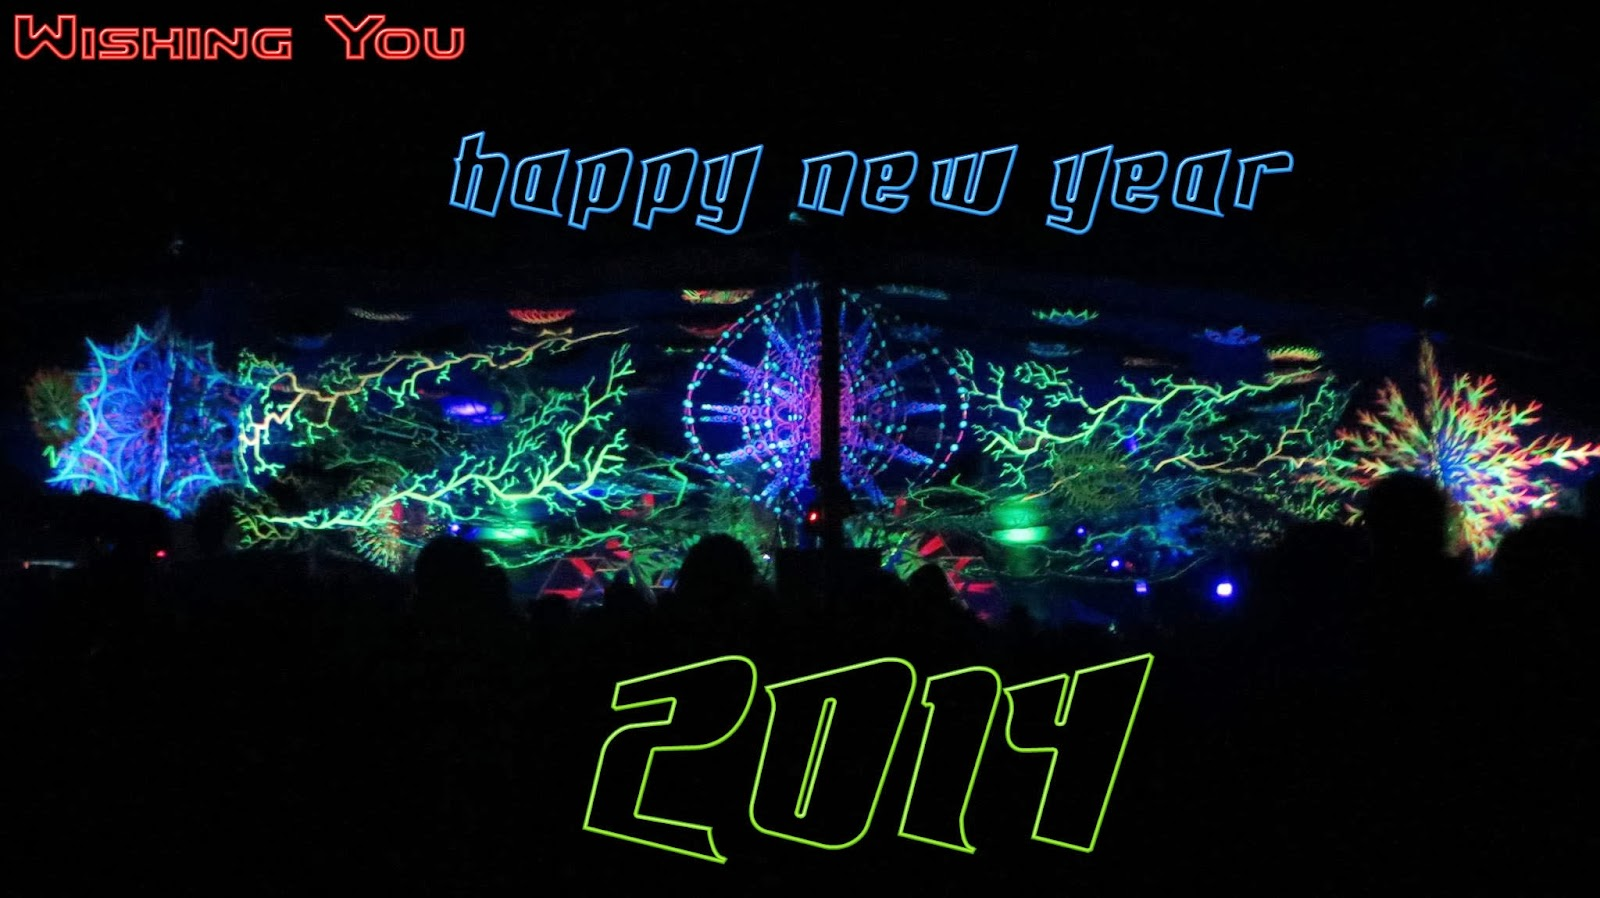 898 jpeg 201kb 2014 happy new year imges new calendar template site